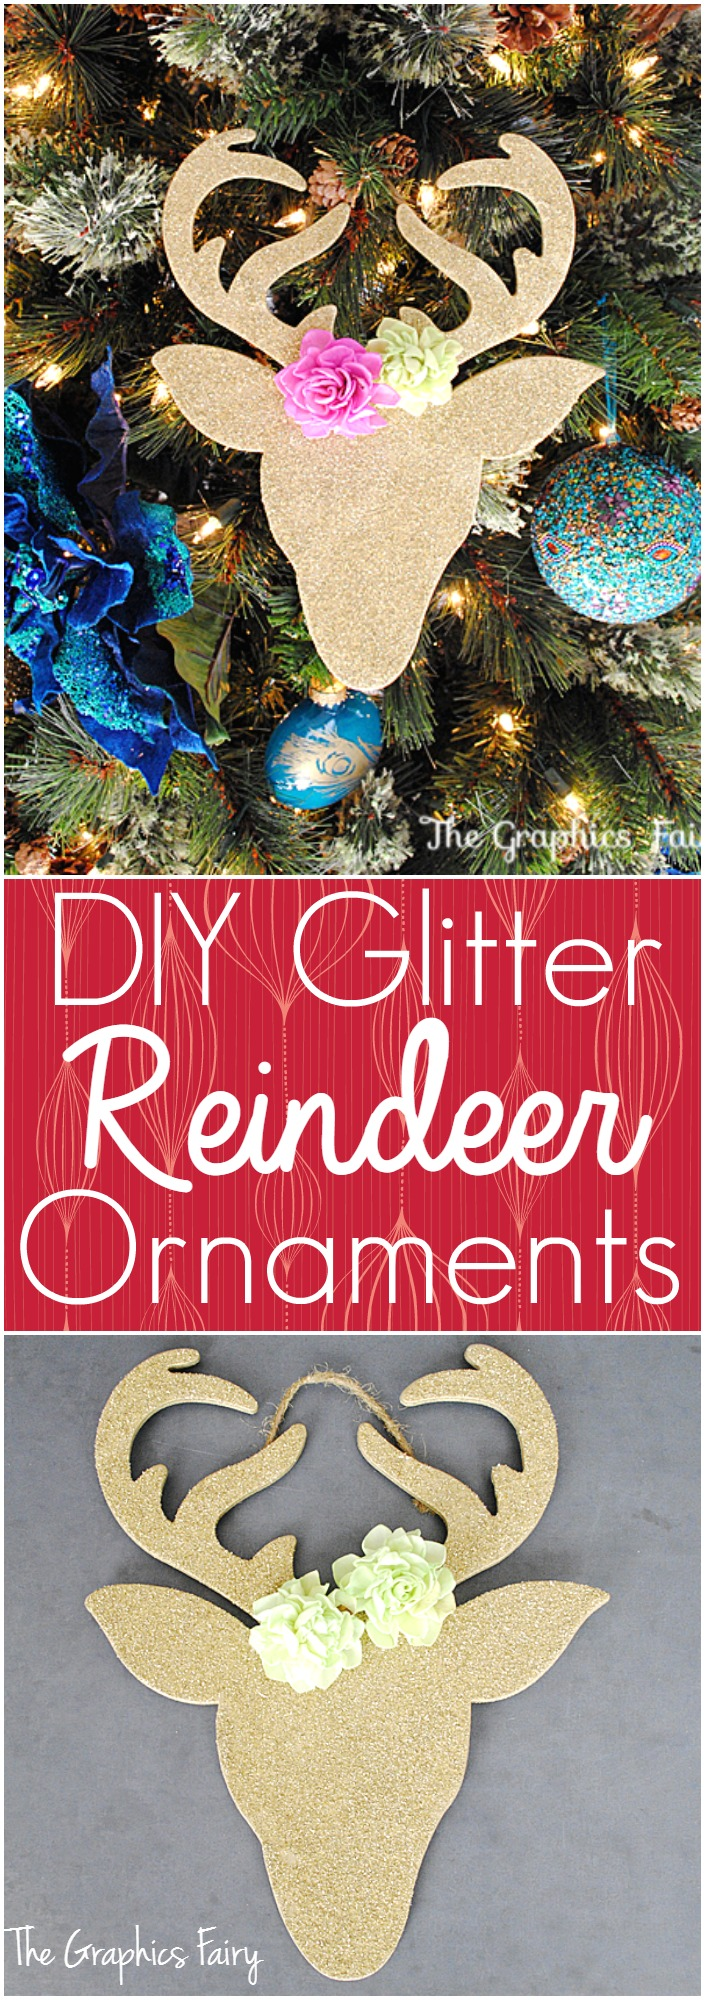 DIY Glitter Reindeer Ornaments - The Graphics Fairy